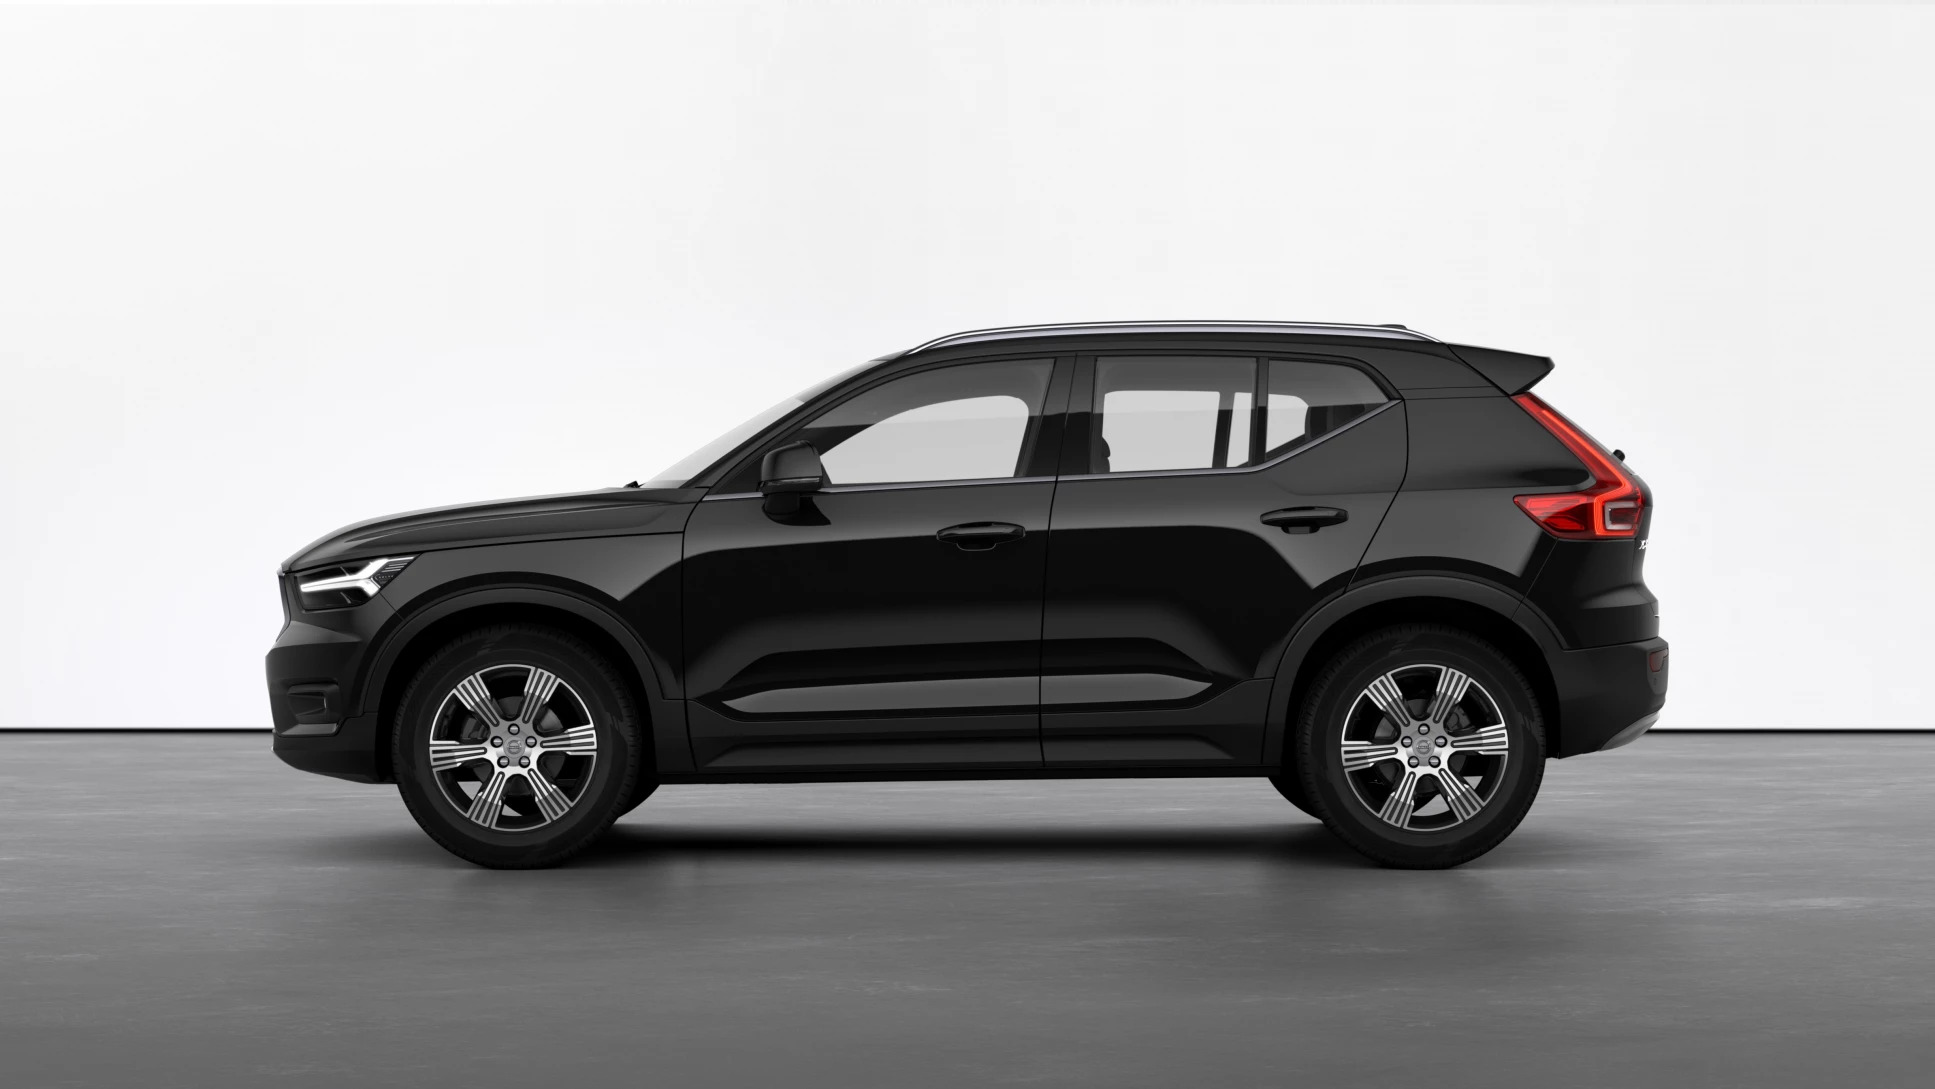 Volvo XC40 MY22 Recharge T5 AT7 FWD Inscription Expression G7 #12933